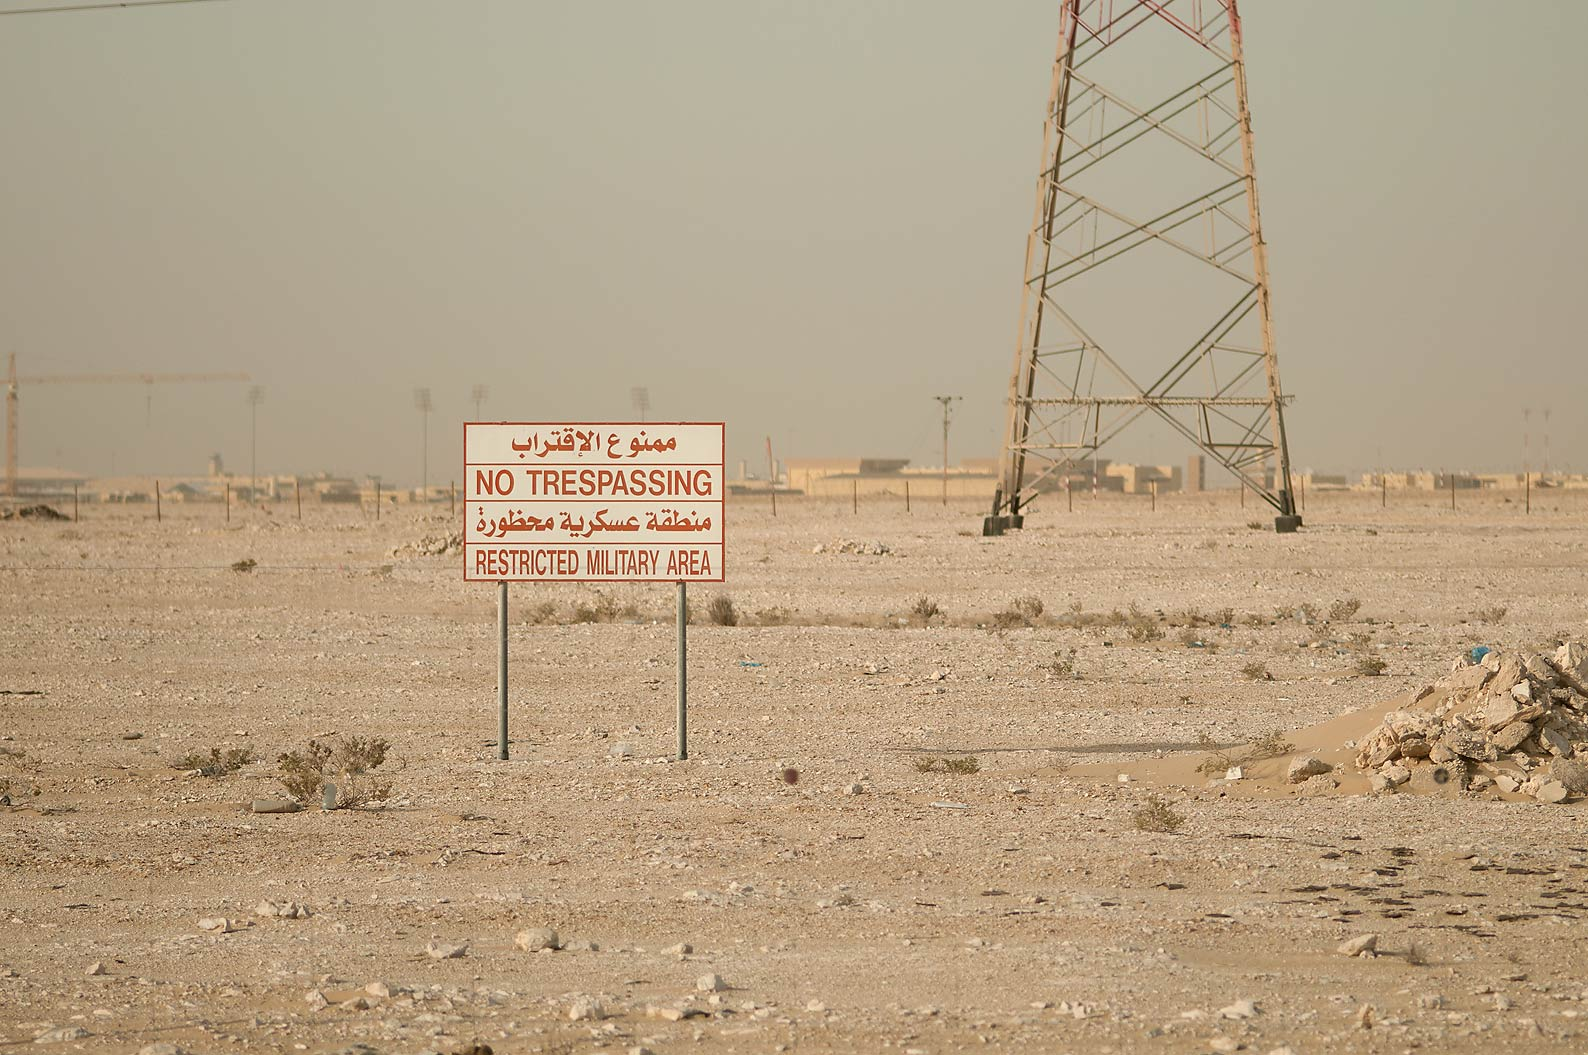 Photo 1175-05: Al Udeid Air Base (Abu Nahlah Airport) near